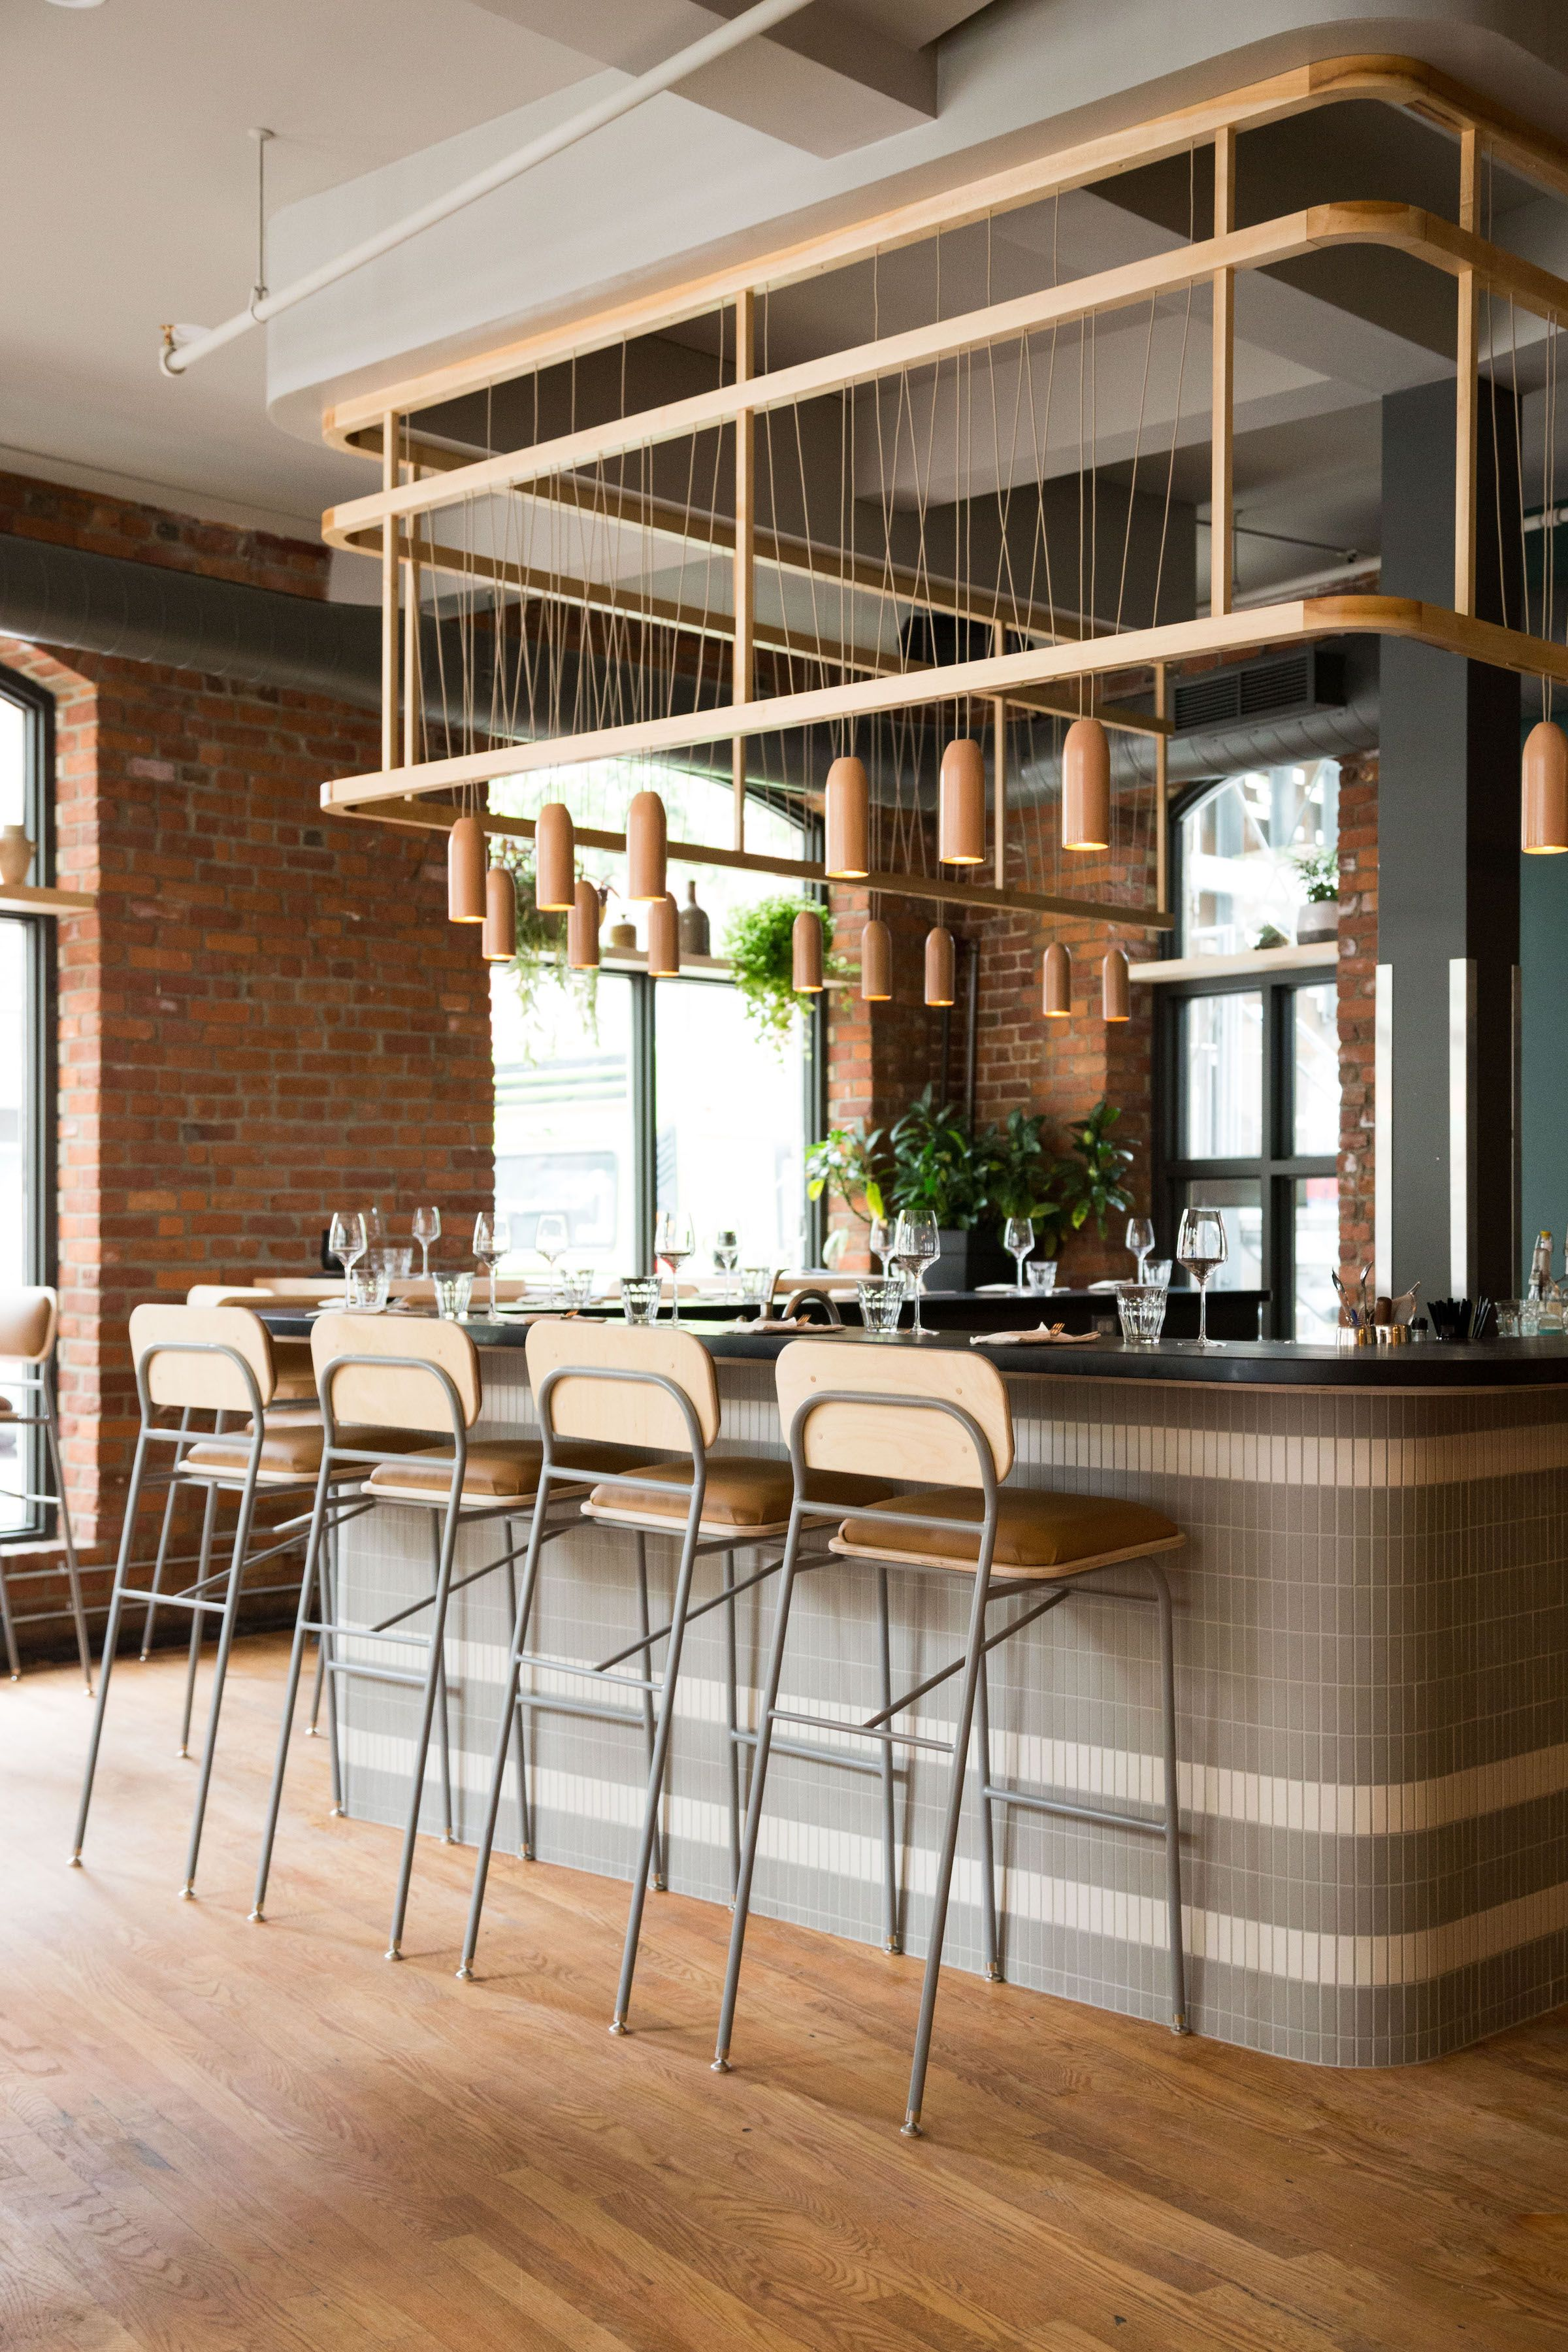 Designers and craftmen unite to create Le Voisin, a bespoke restaurant in  Qubec, Canada